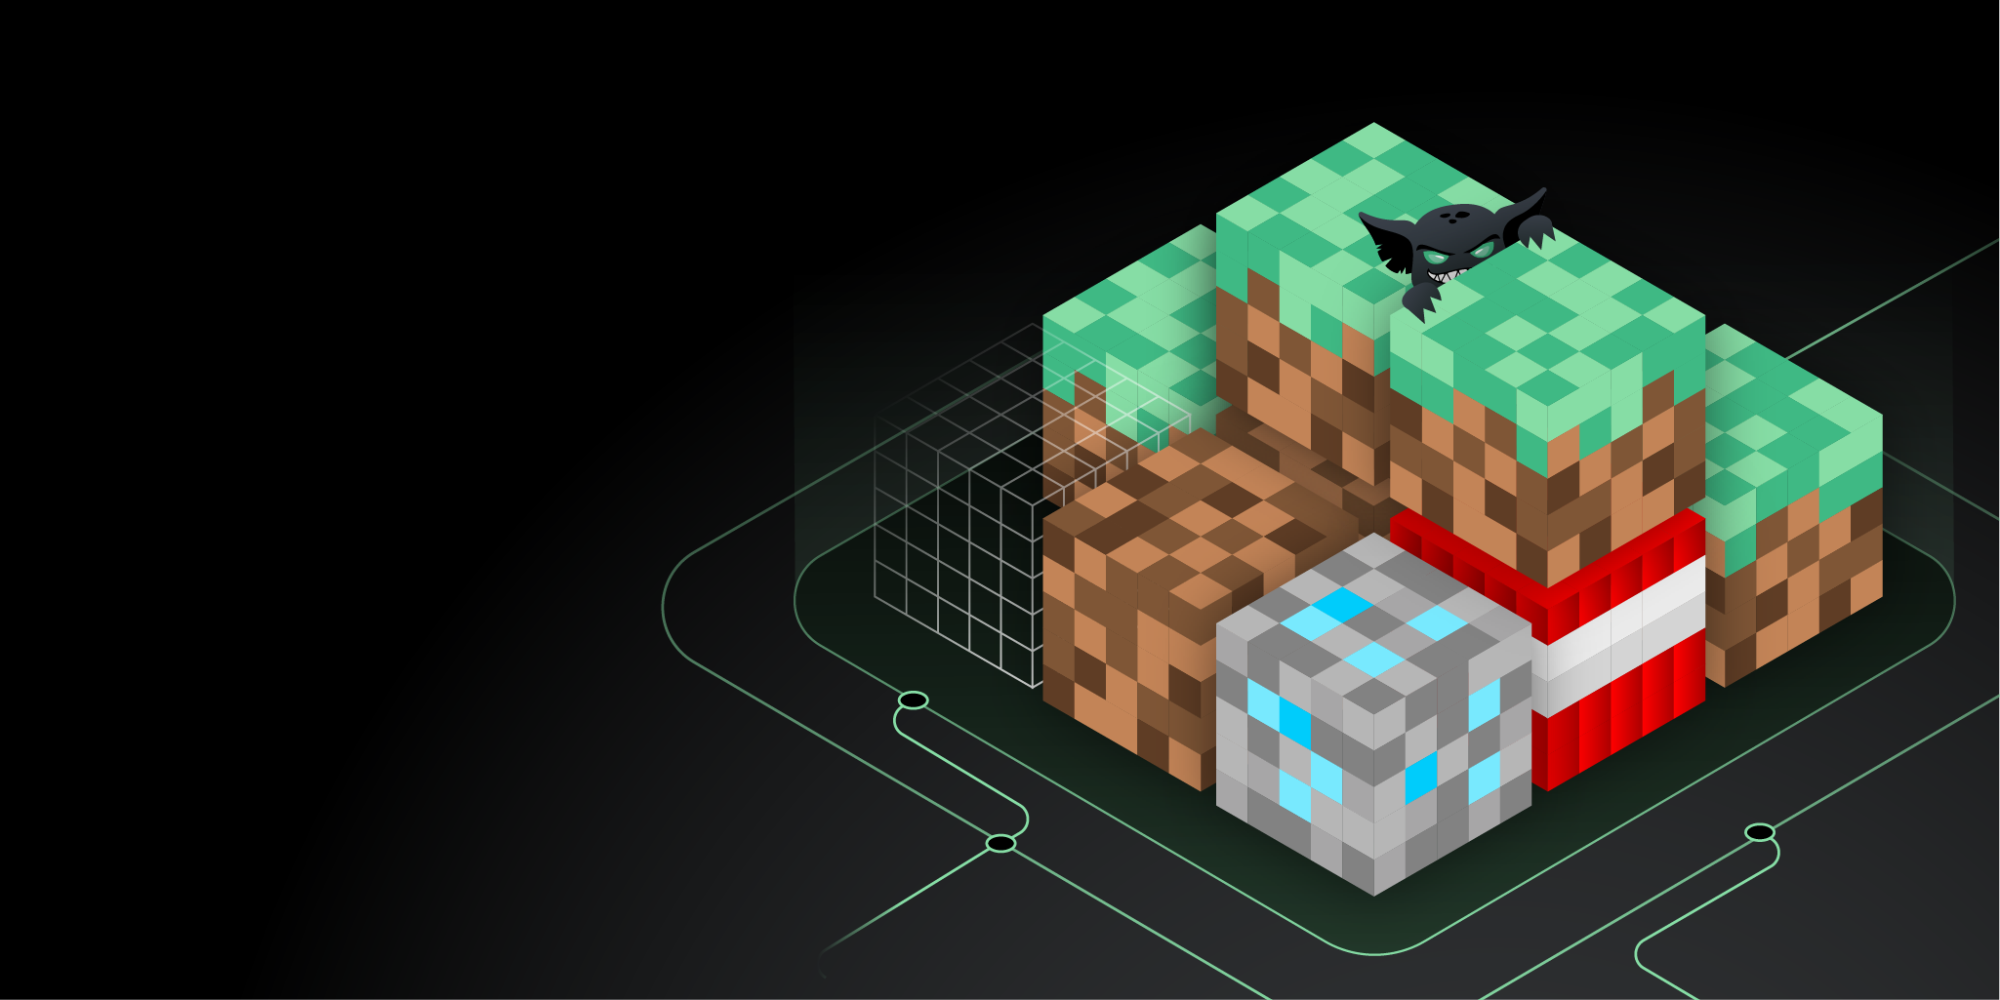 Chaos Engineering with Minecraft